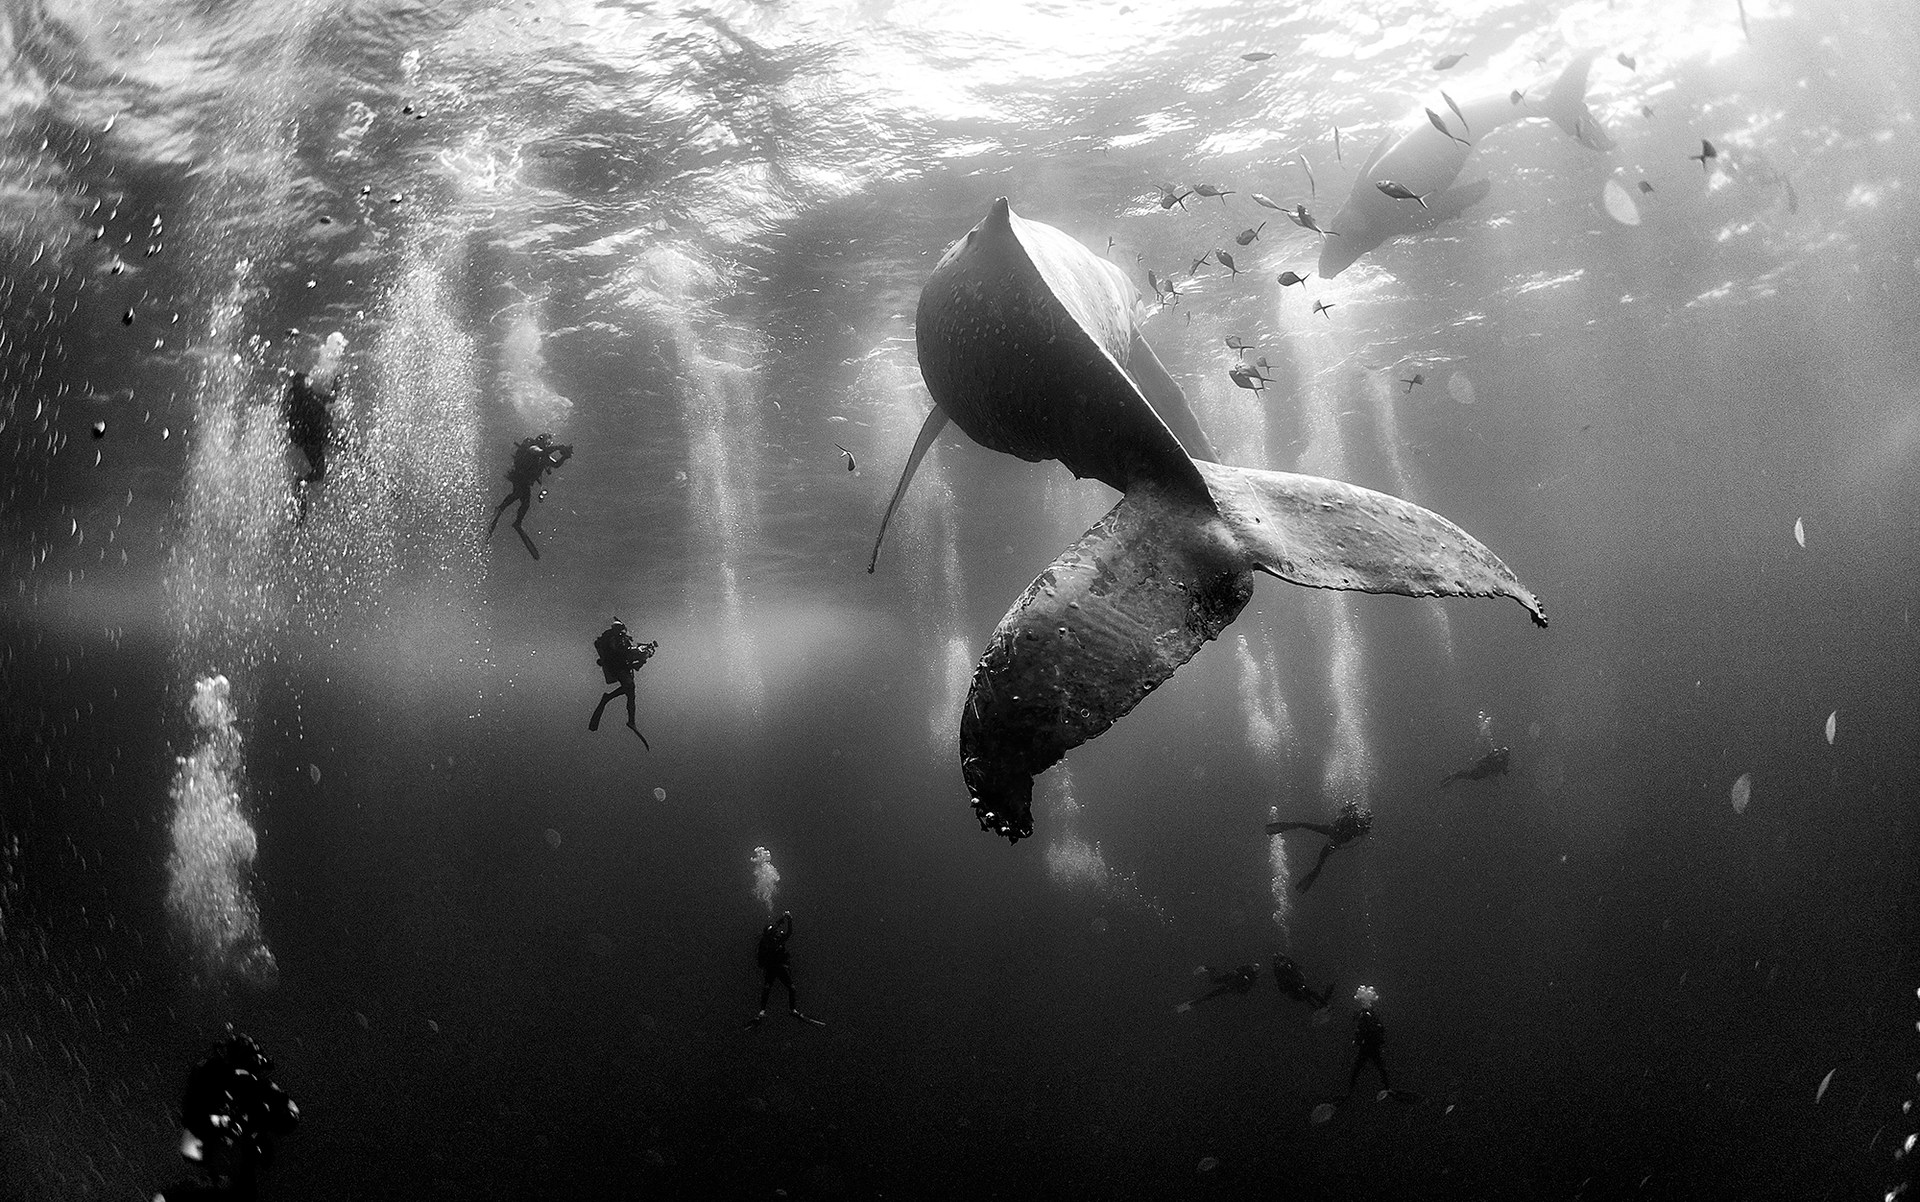 121-102331-underwater-in-black-and-white